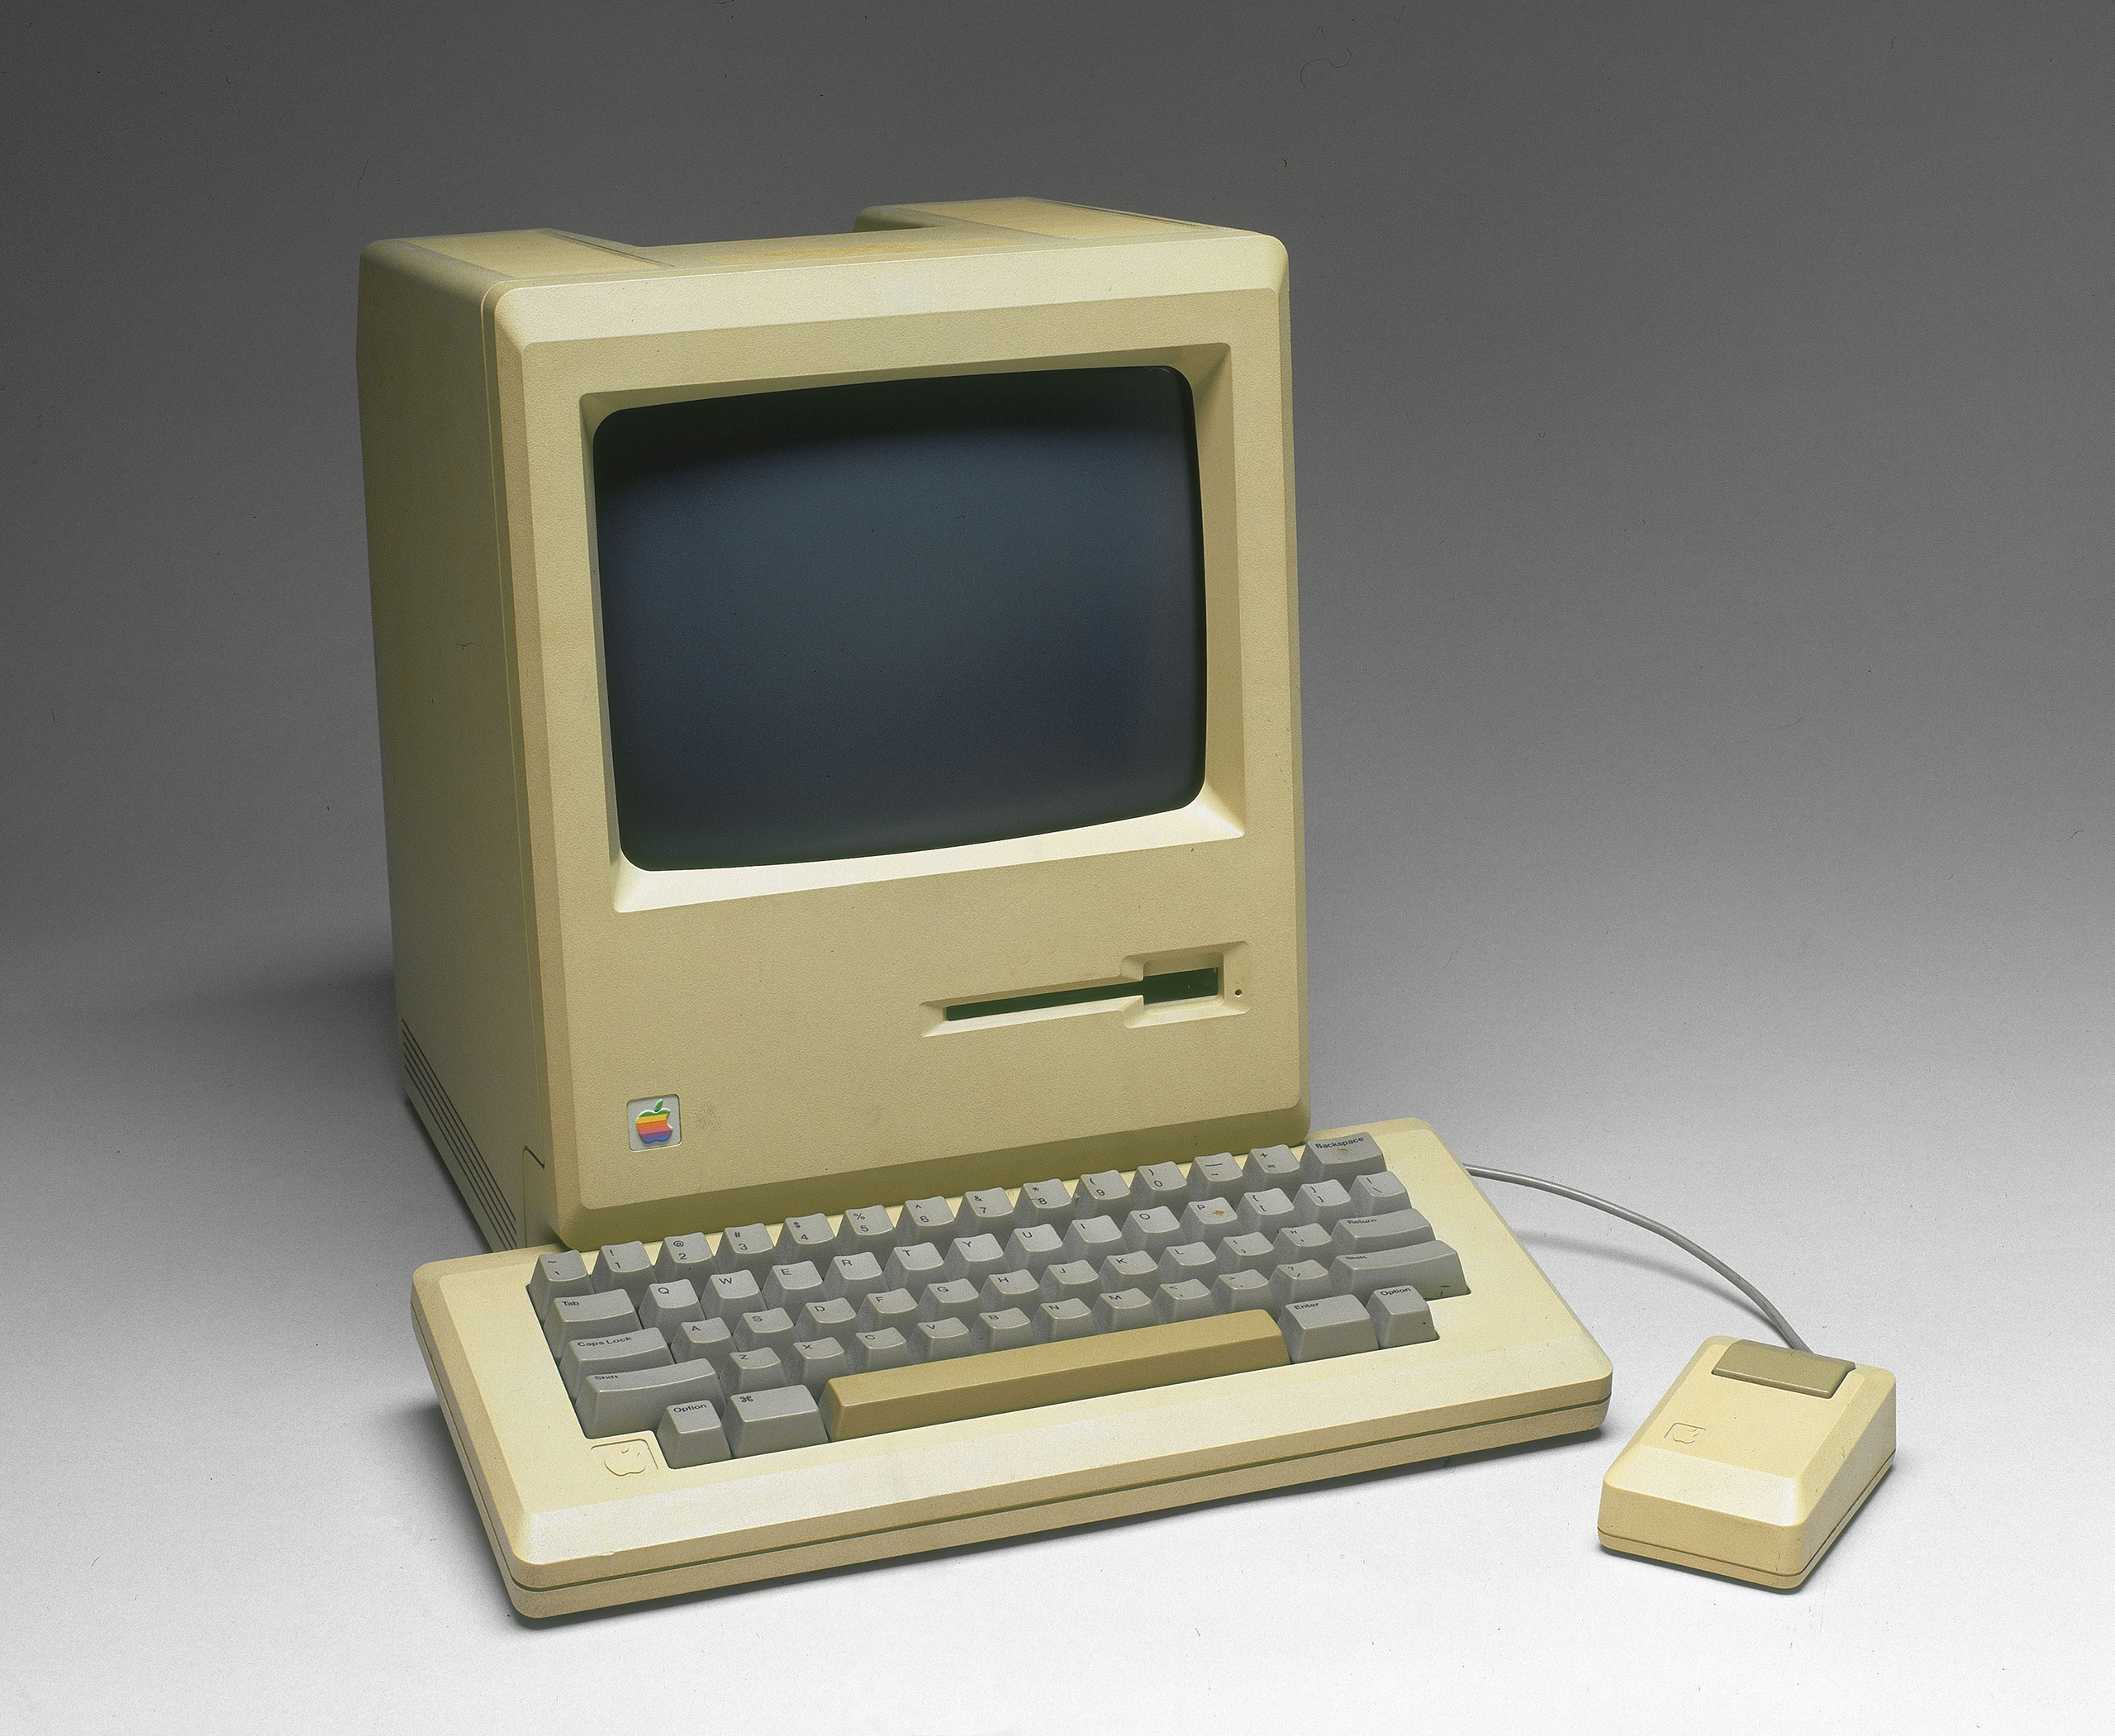 Apple Macintosh computer, model M001, c 1984.